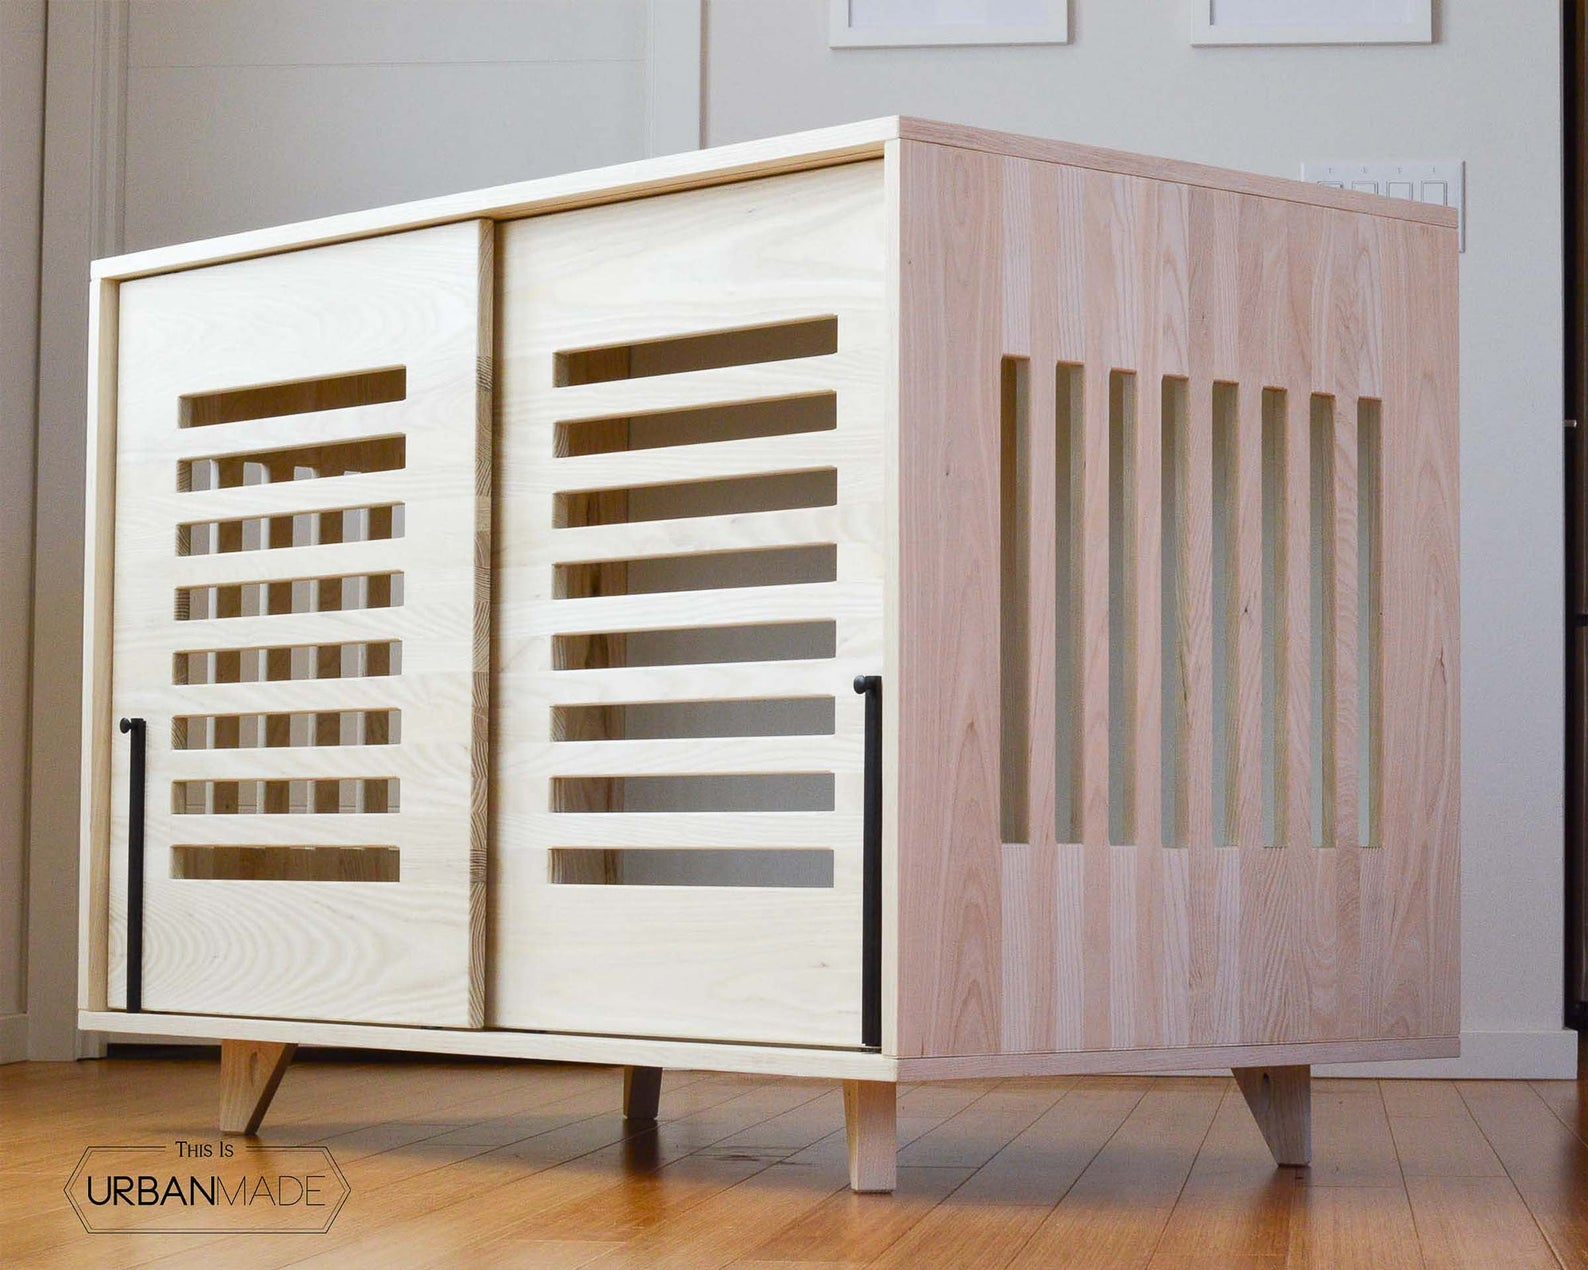 Light Wood Dog Crate Furniture via This Is Urban Made (Etsy)